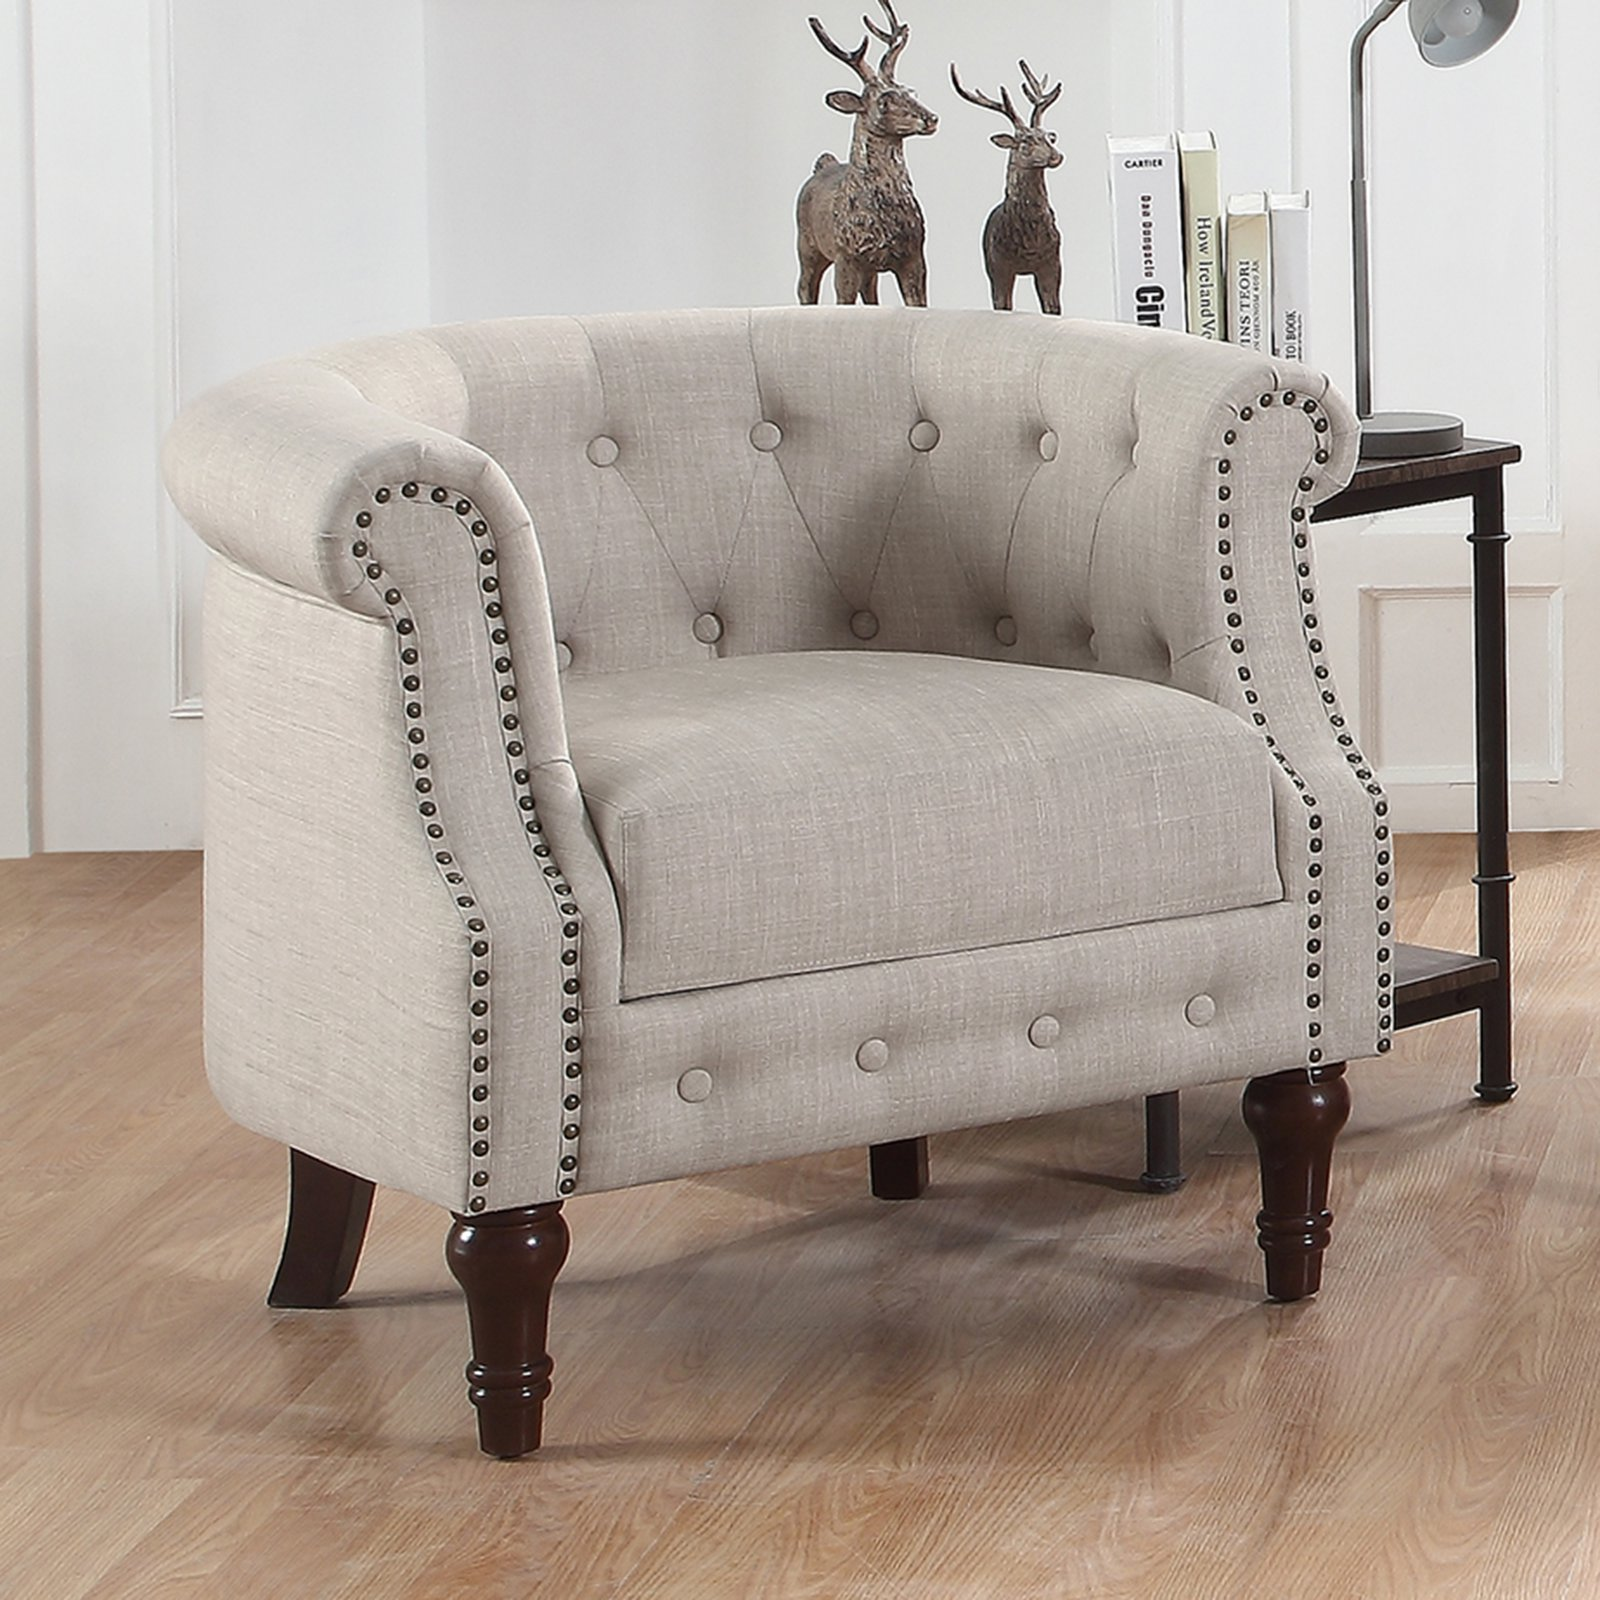 Alton Furniture Da Vigo Tufted BarrelClub Chair With Nailhead Trim Arms